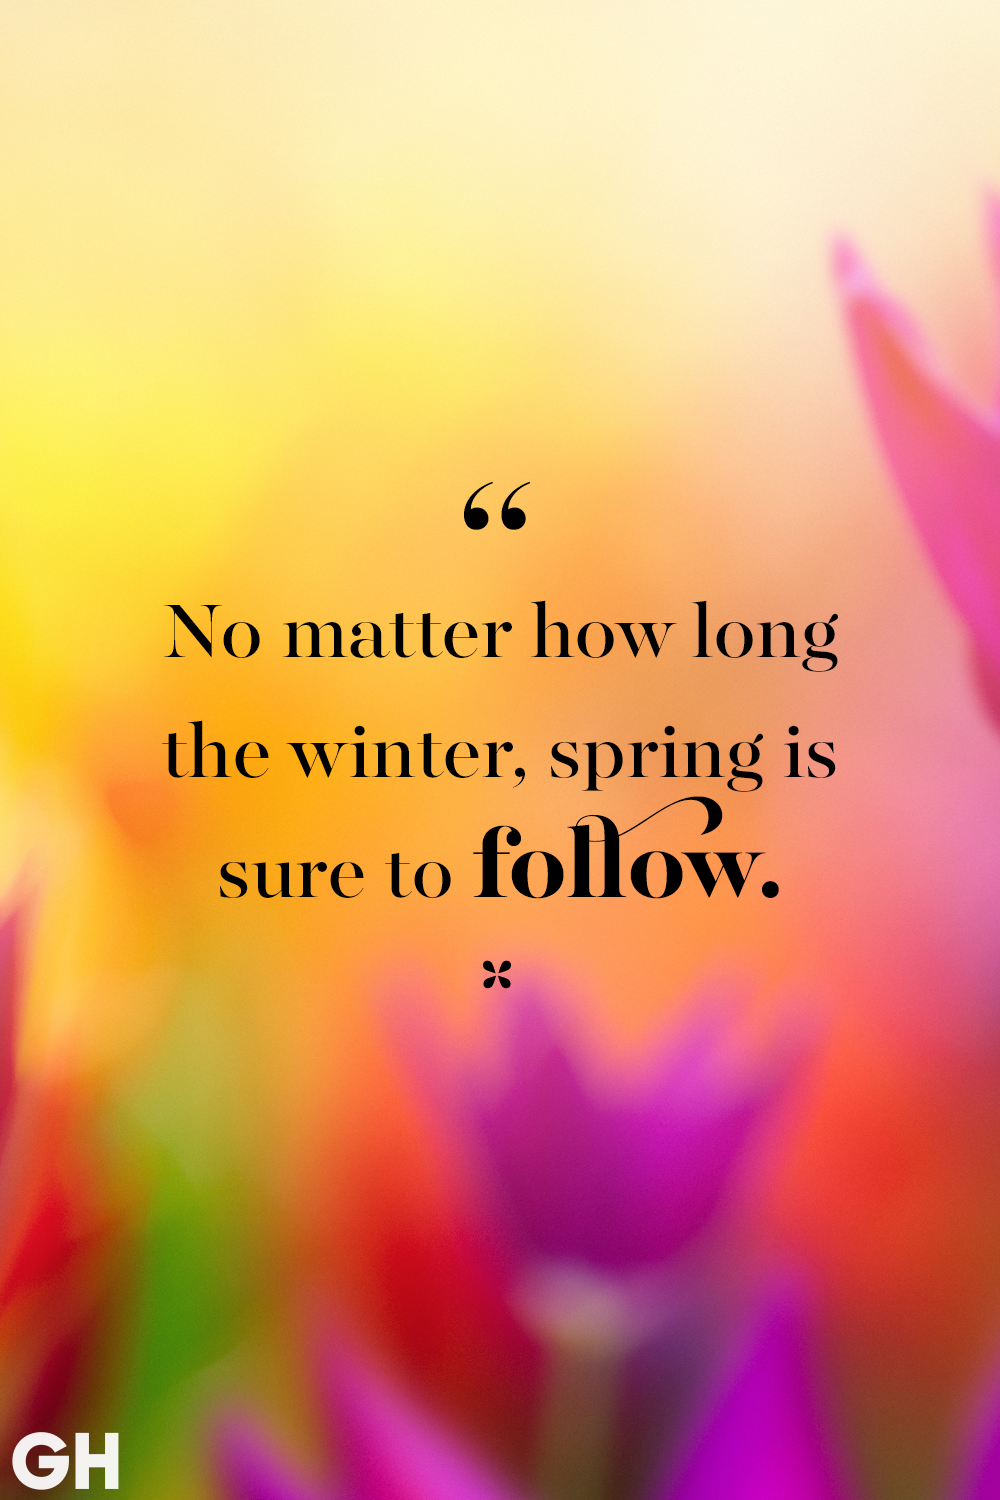 8 Inspirational Spring Quotes - Quotes for Welcoming Spring